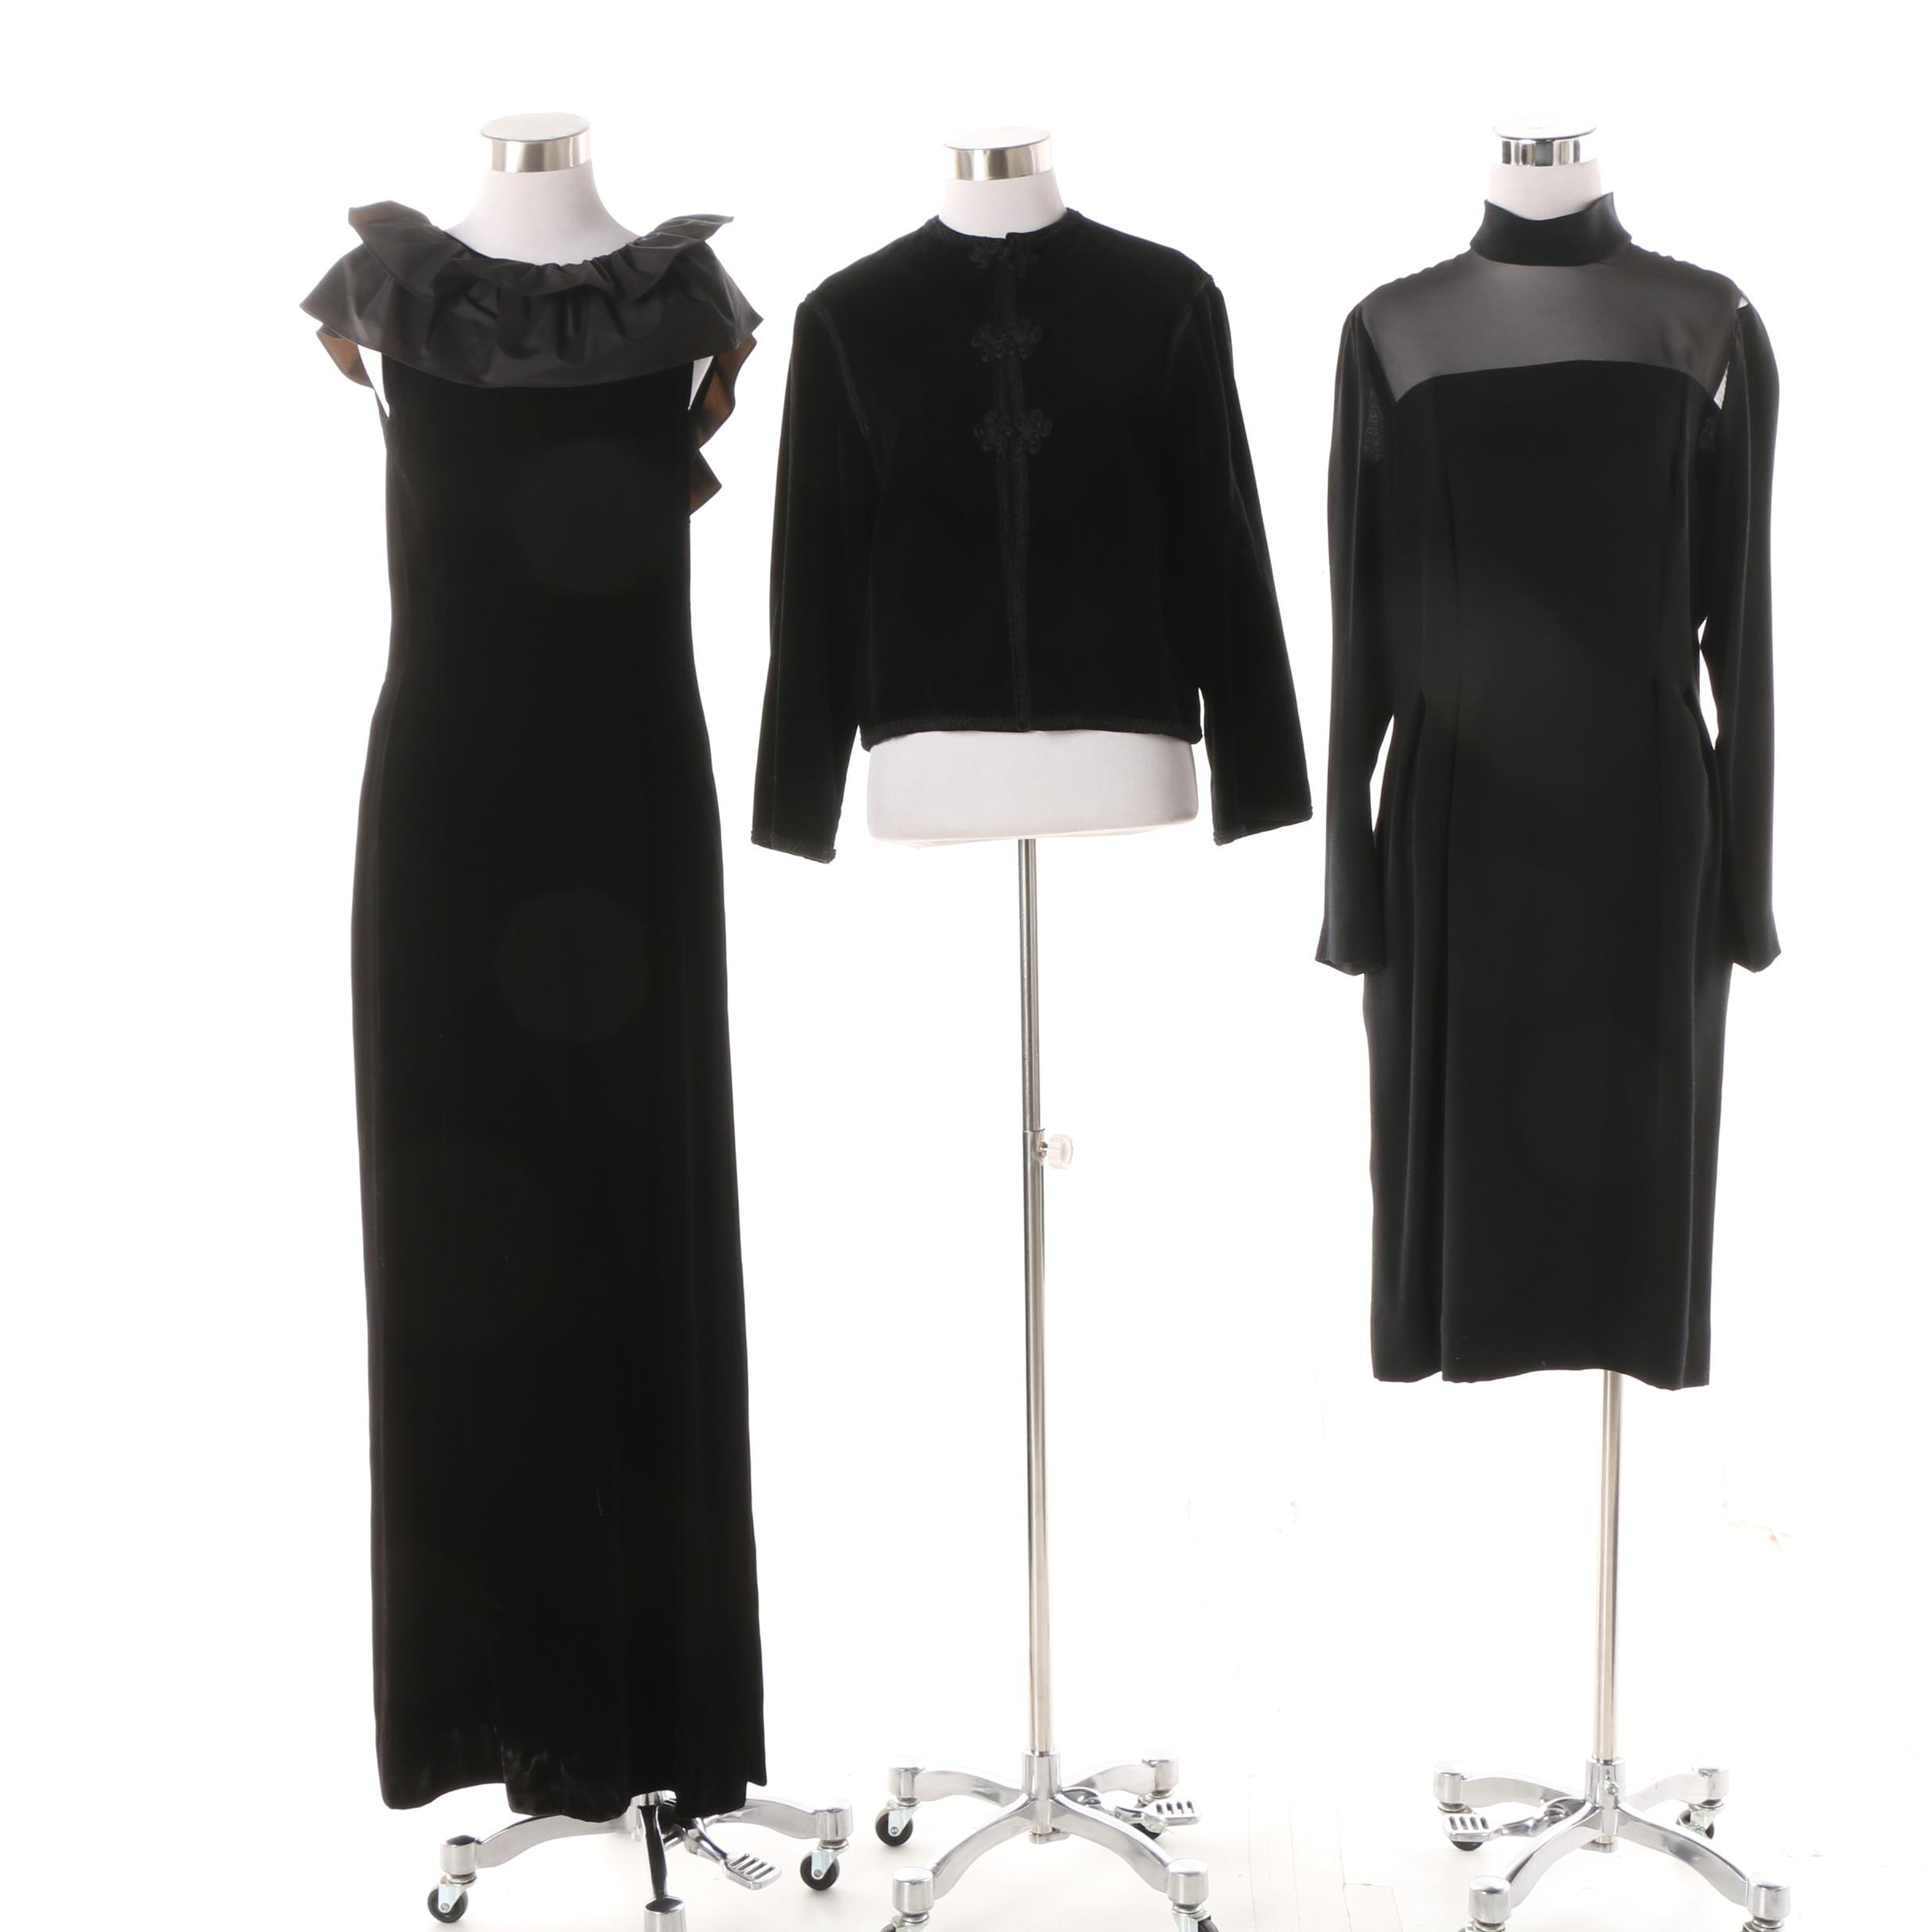 Women's Black Evening Dresses and Jacket Including Nipon Boutique and A.J. Bari